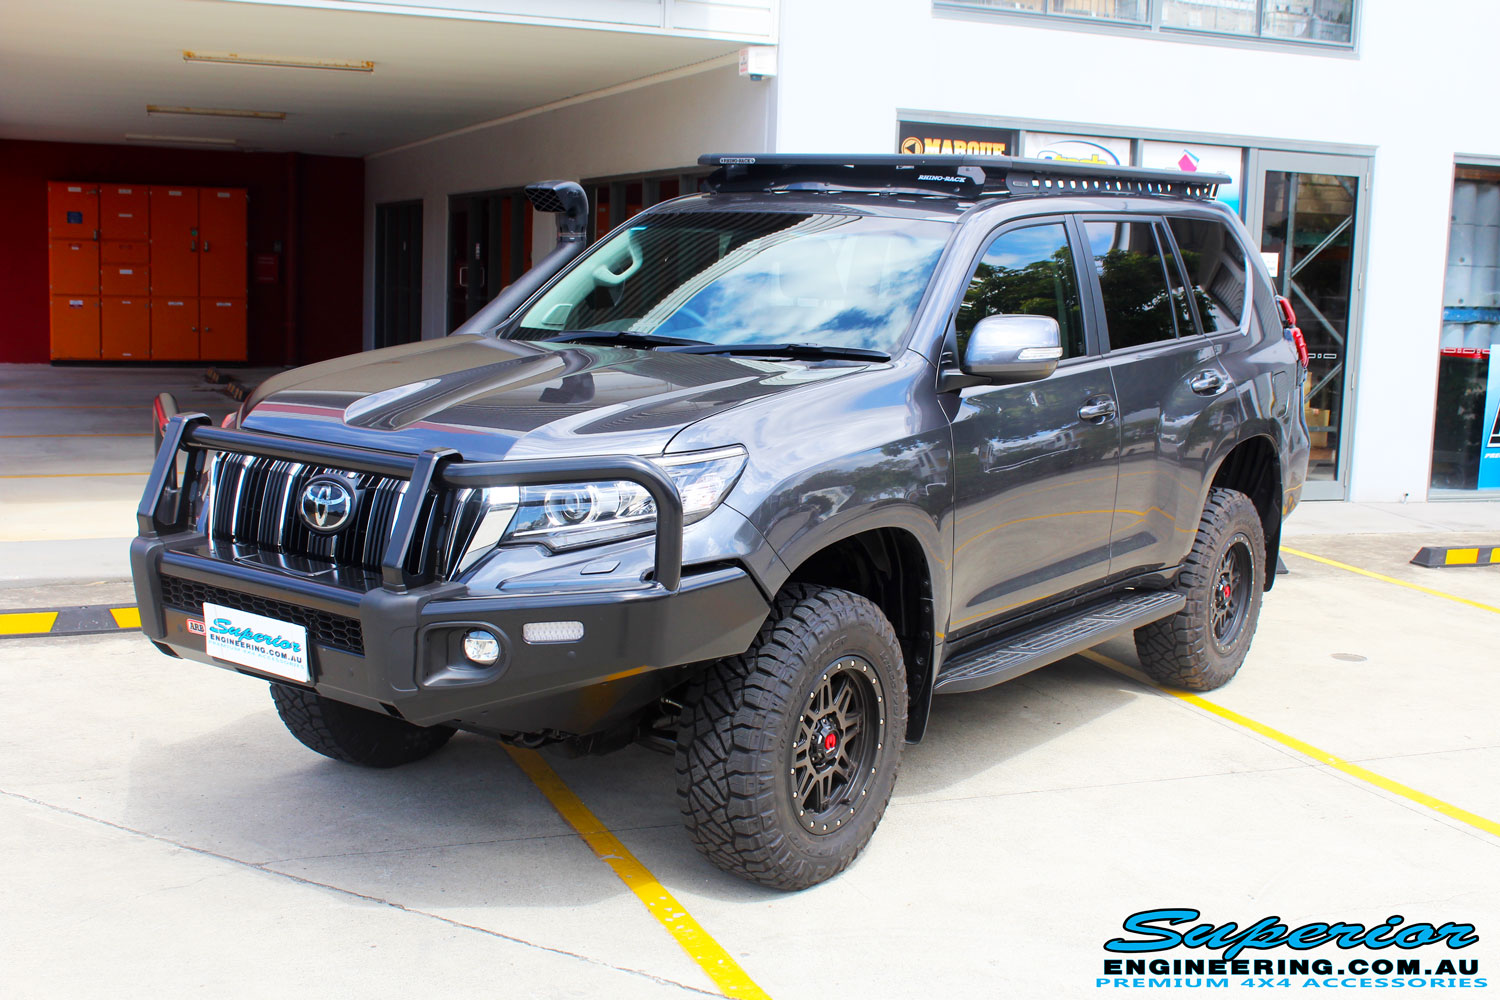 "Left front side view of a Toyota 150 Landcruiser Prado in Grey after fitment of a 2"" Inch Lift Kit"